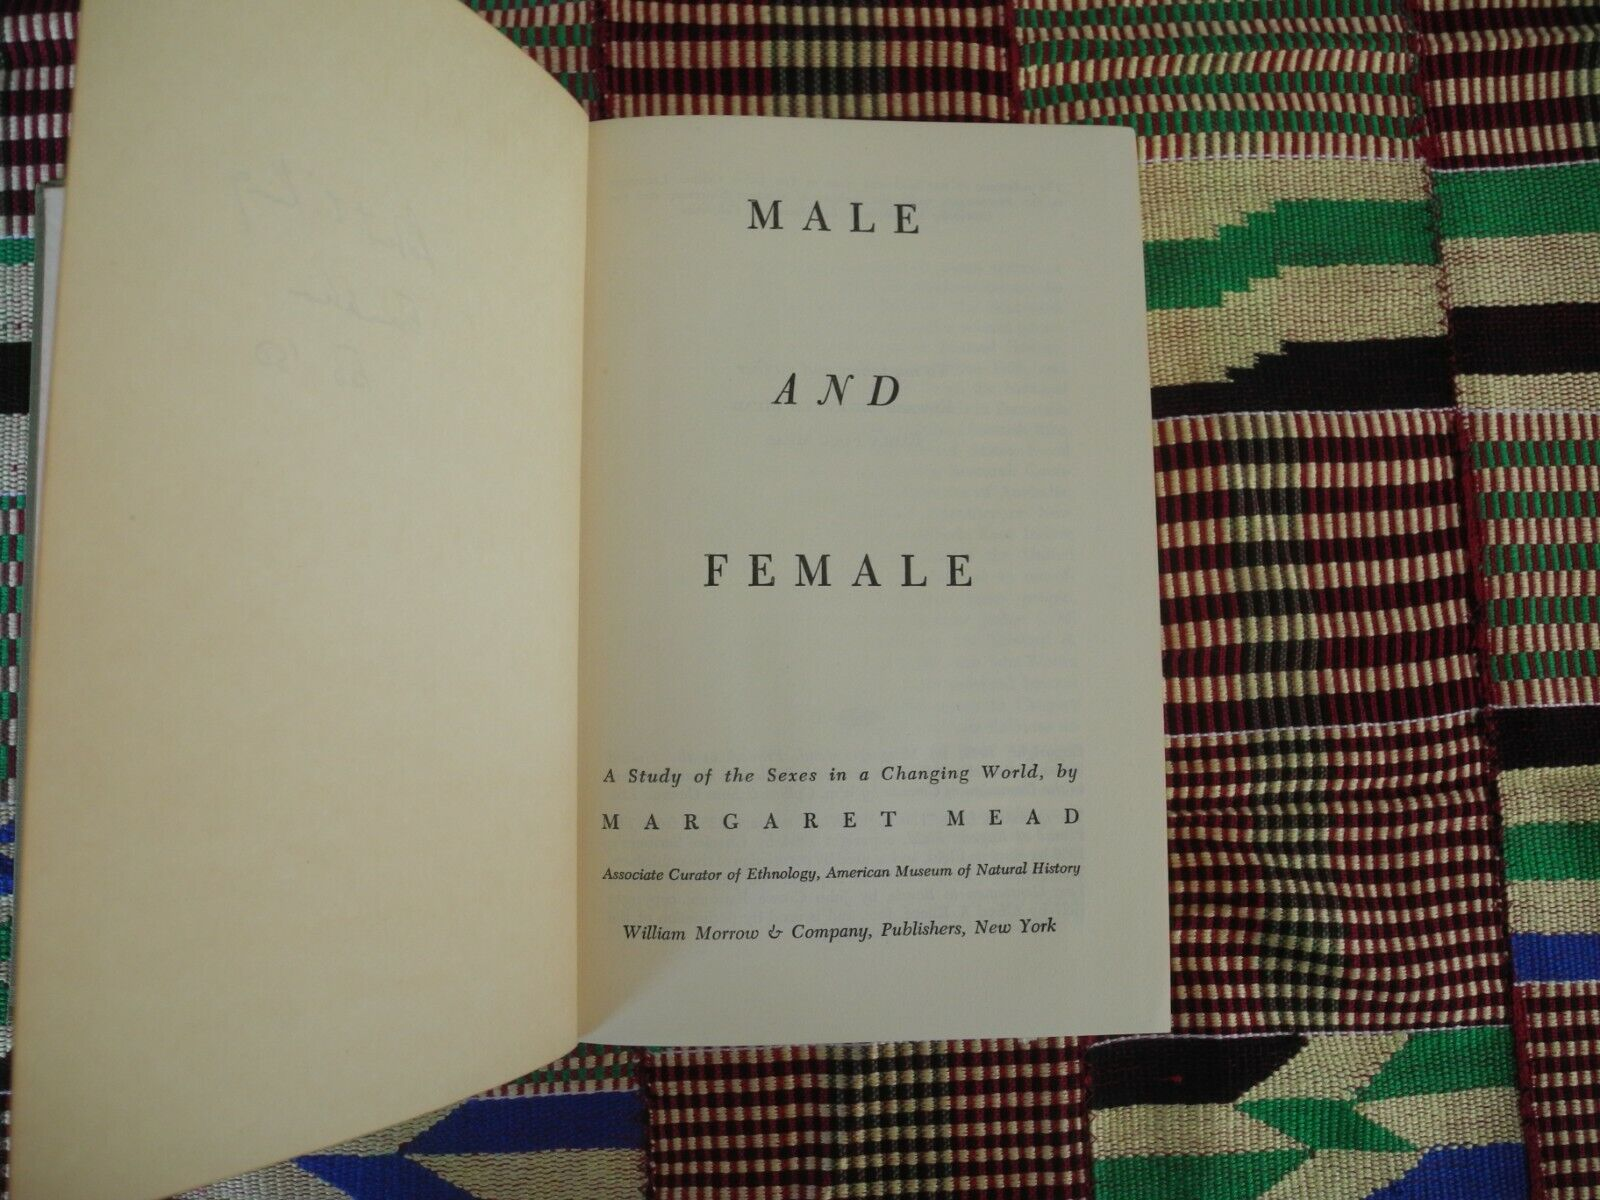 MARGARET MEAD. MALE AND FEMALE A Study Of The Sexes In A Changing World.1949. - $9.00